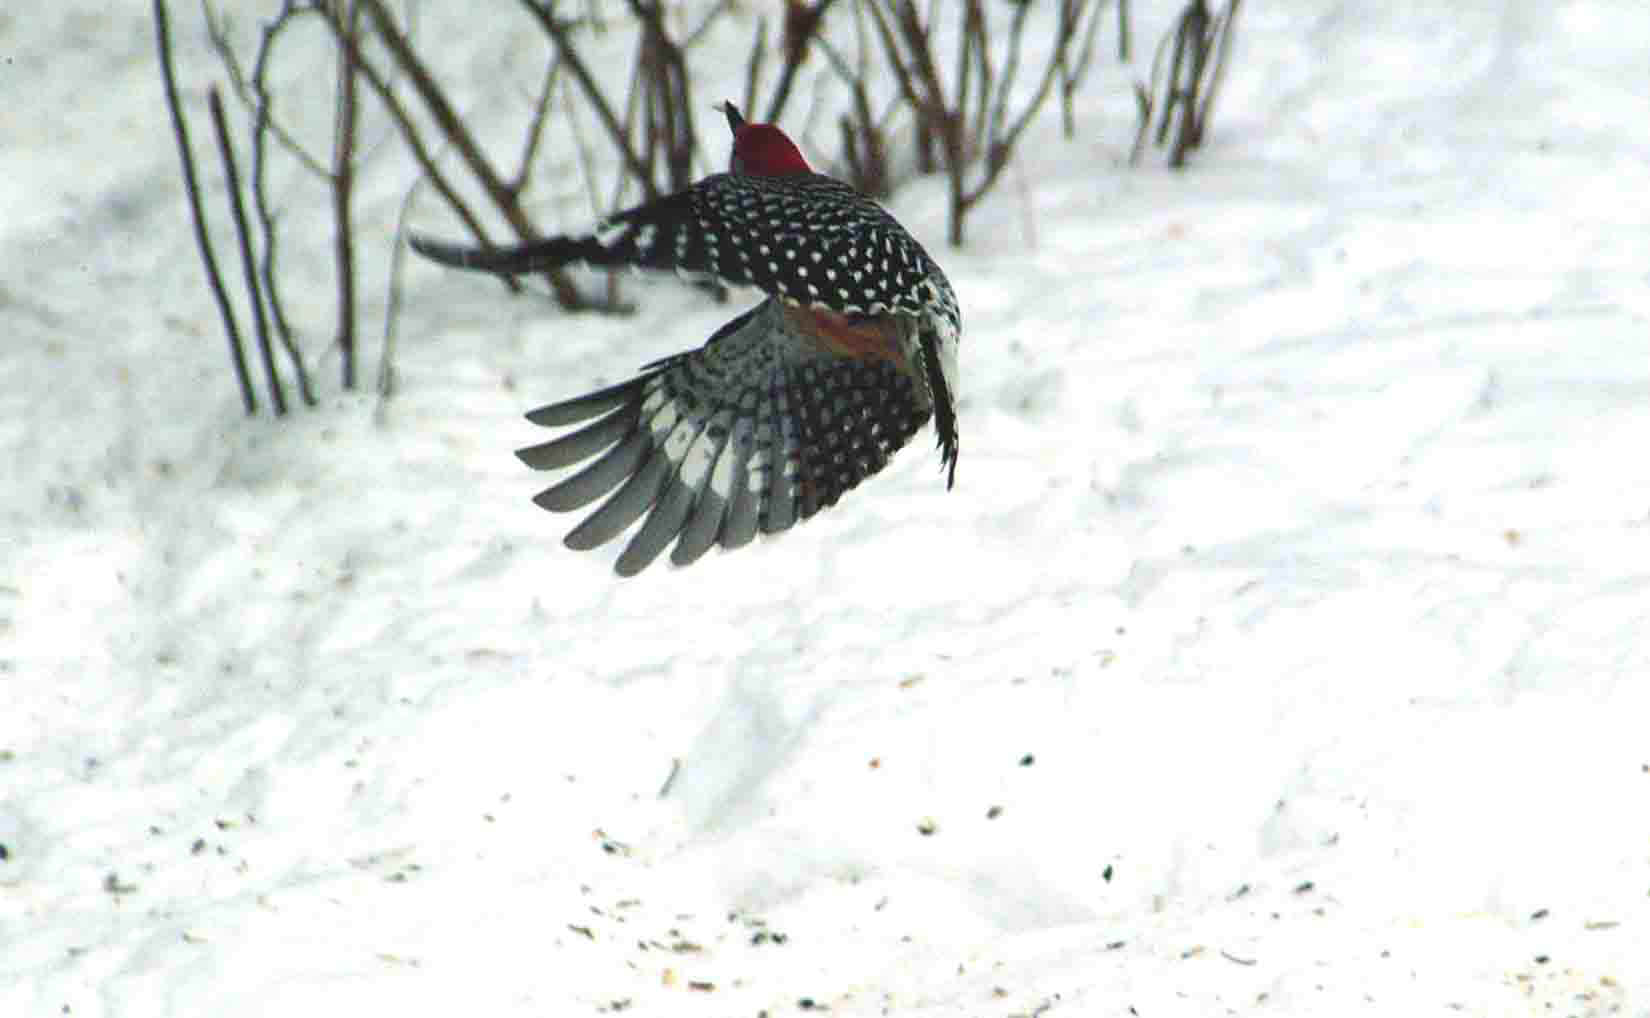 A red-bellied woodpecker in flight